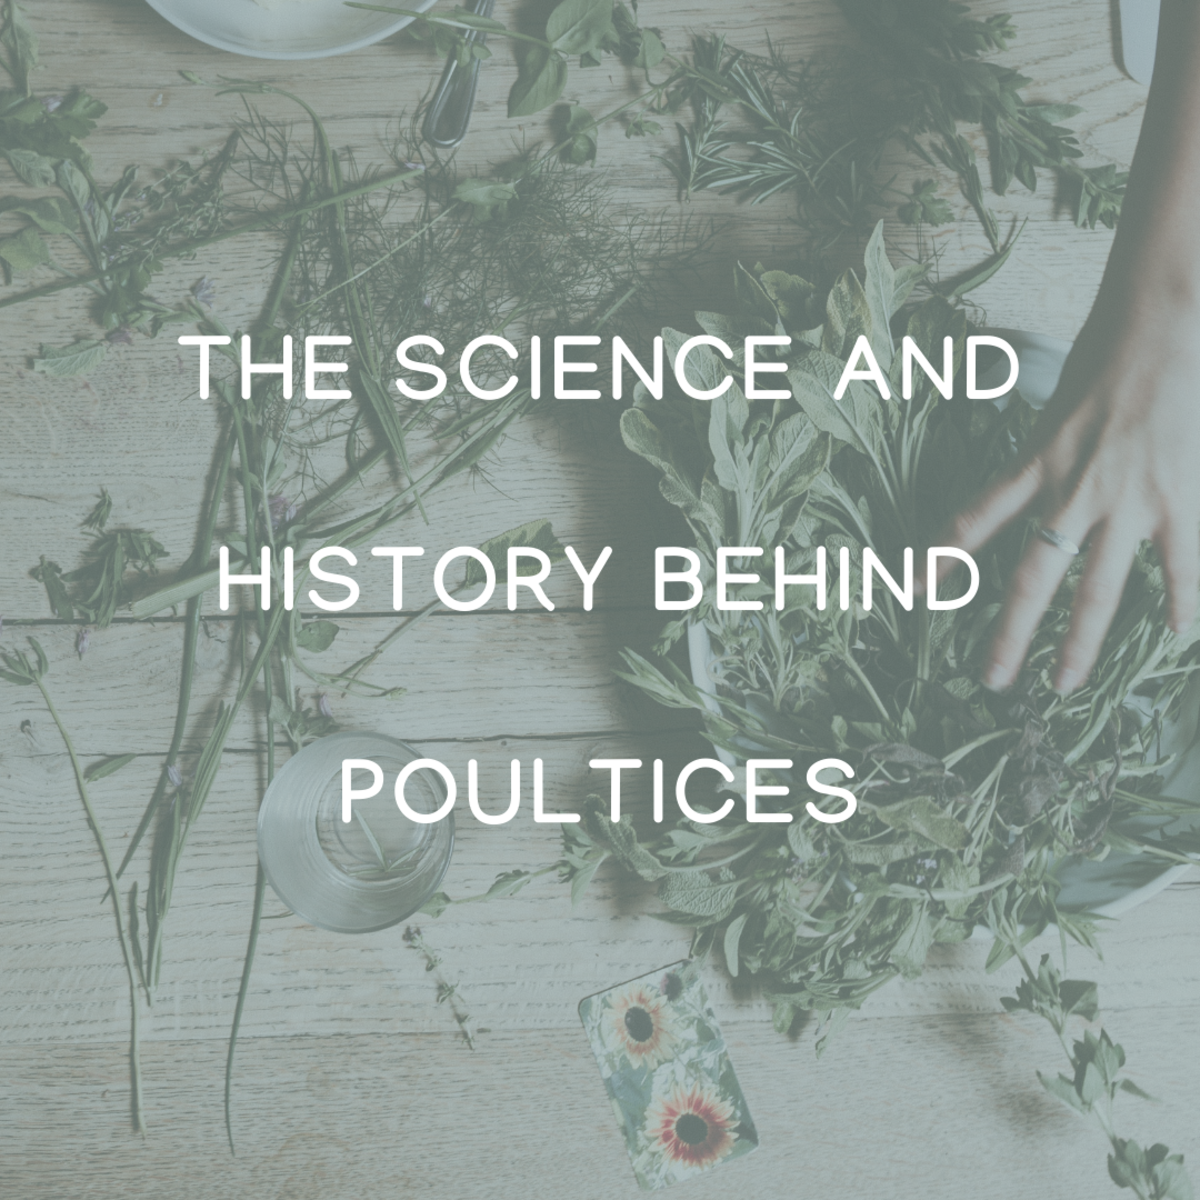 The History of Poultices (and Science!)